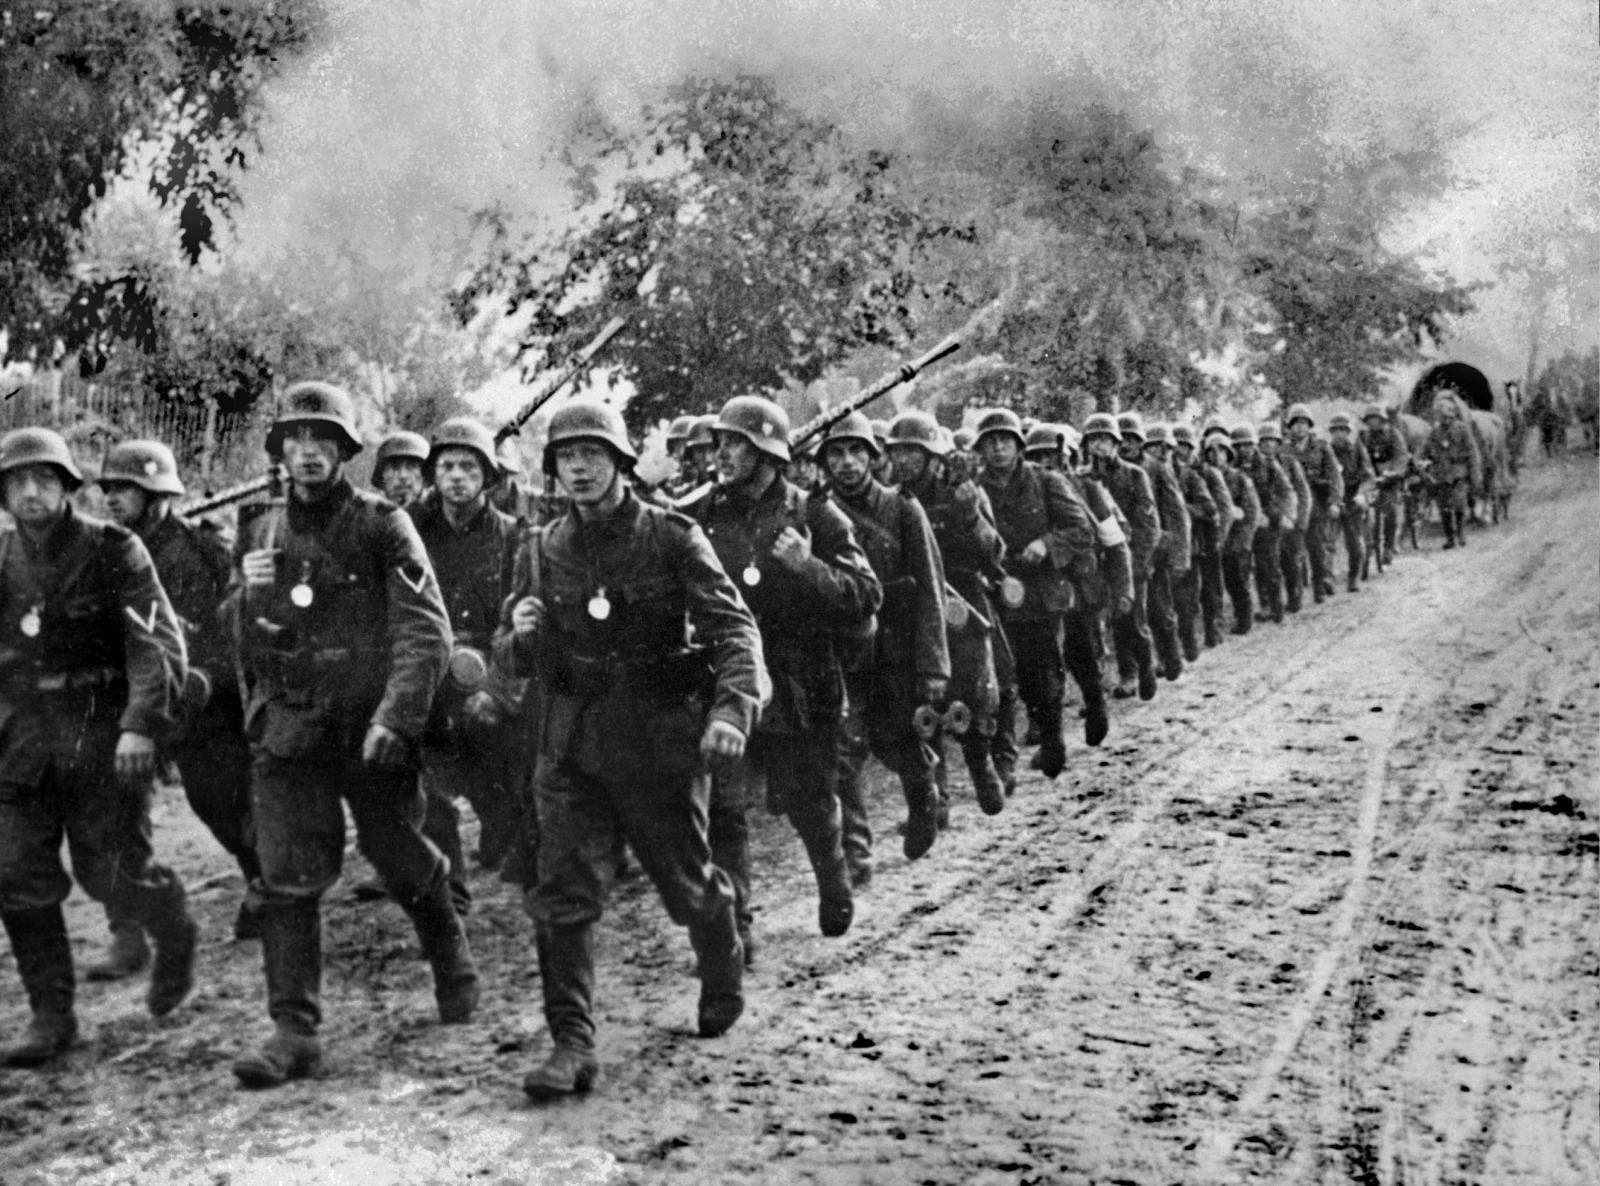 Nazi troops enter Poland